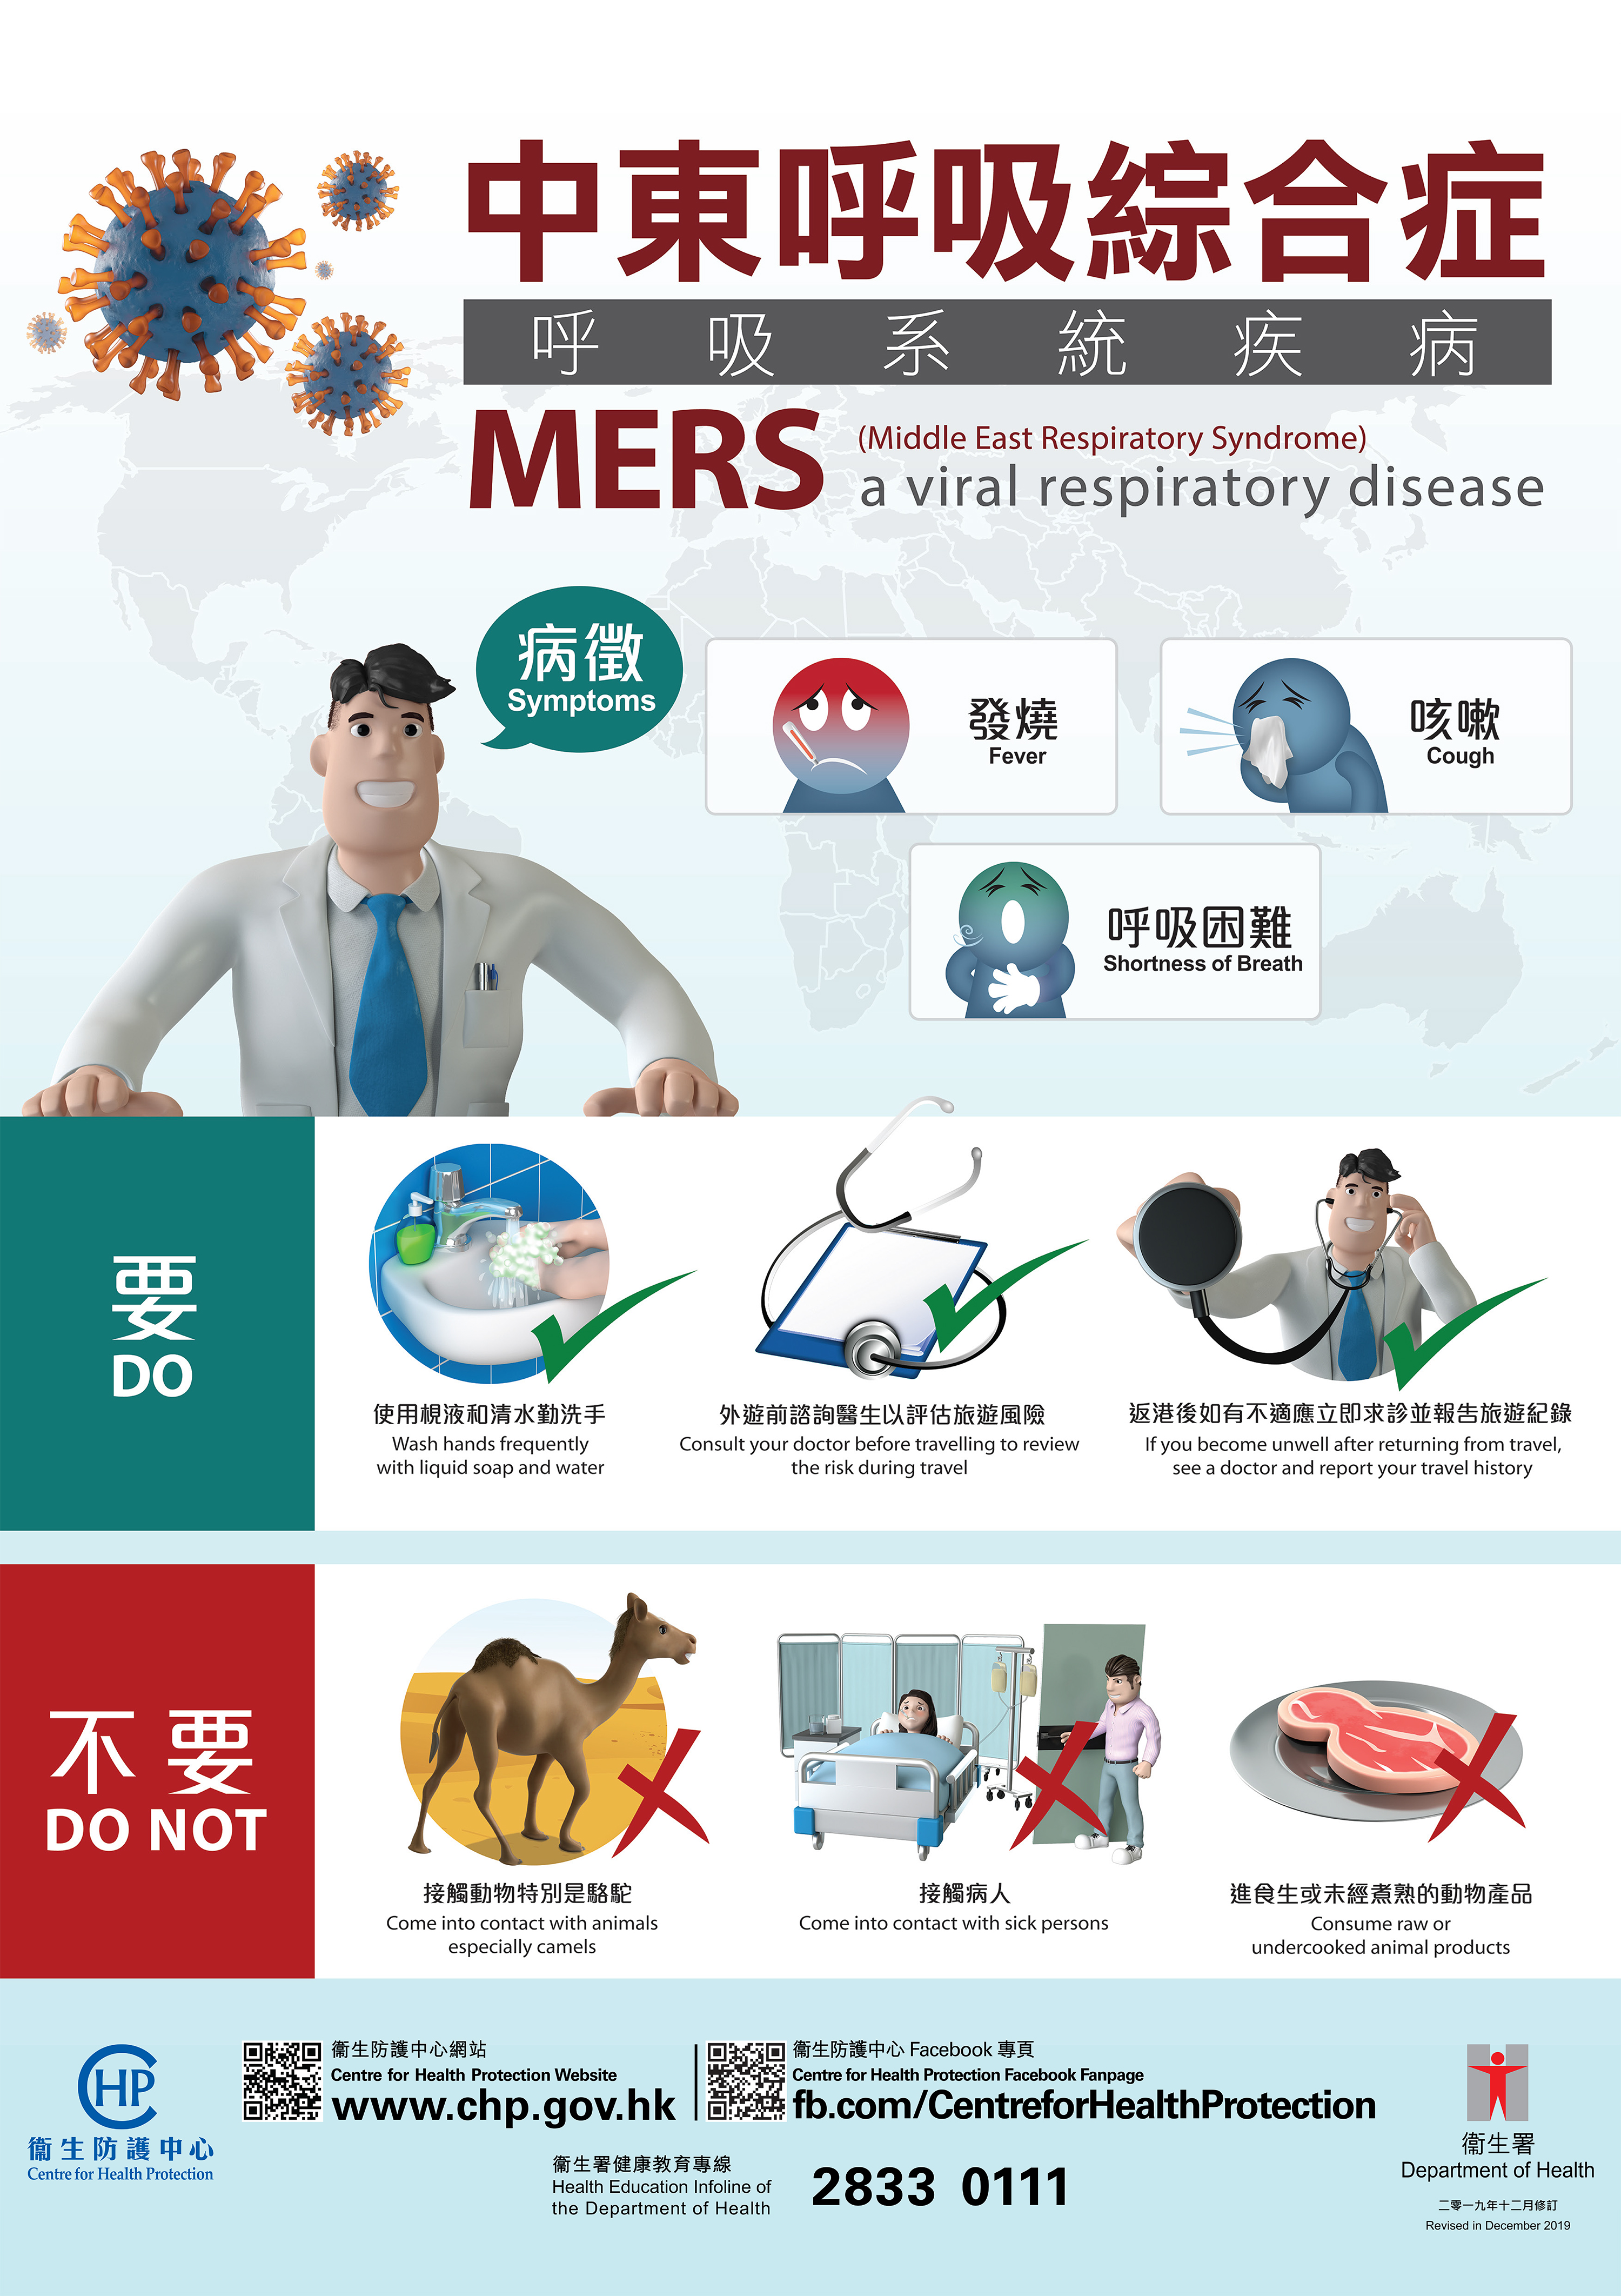 Middle East Respiratory Syndrome (MERS)